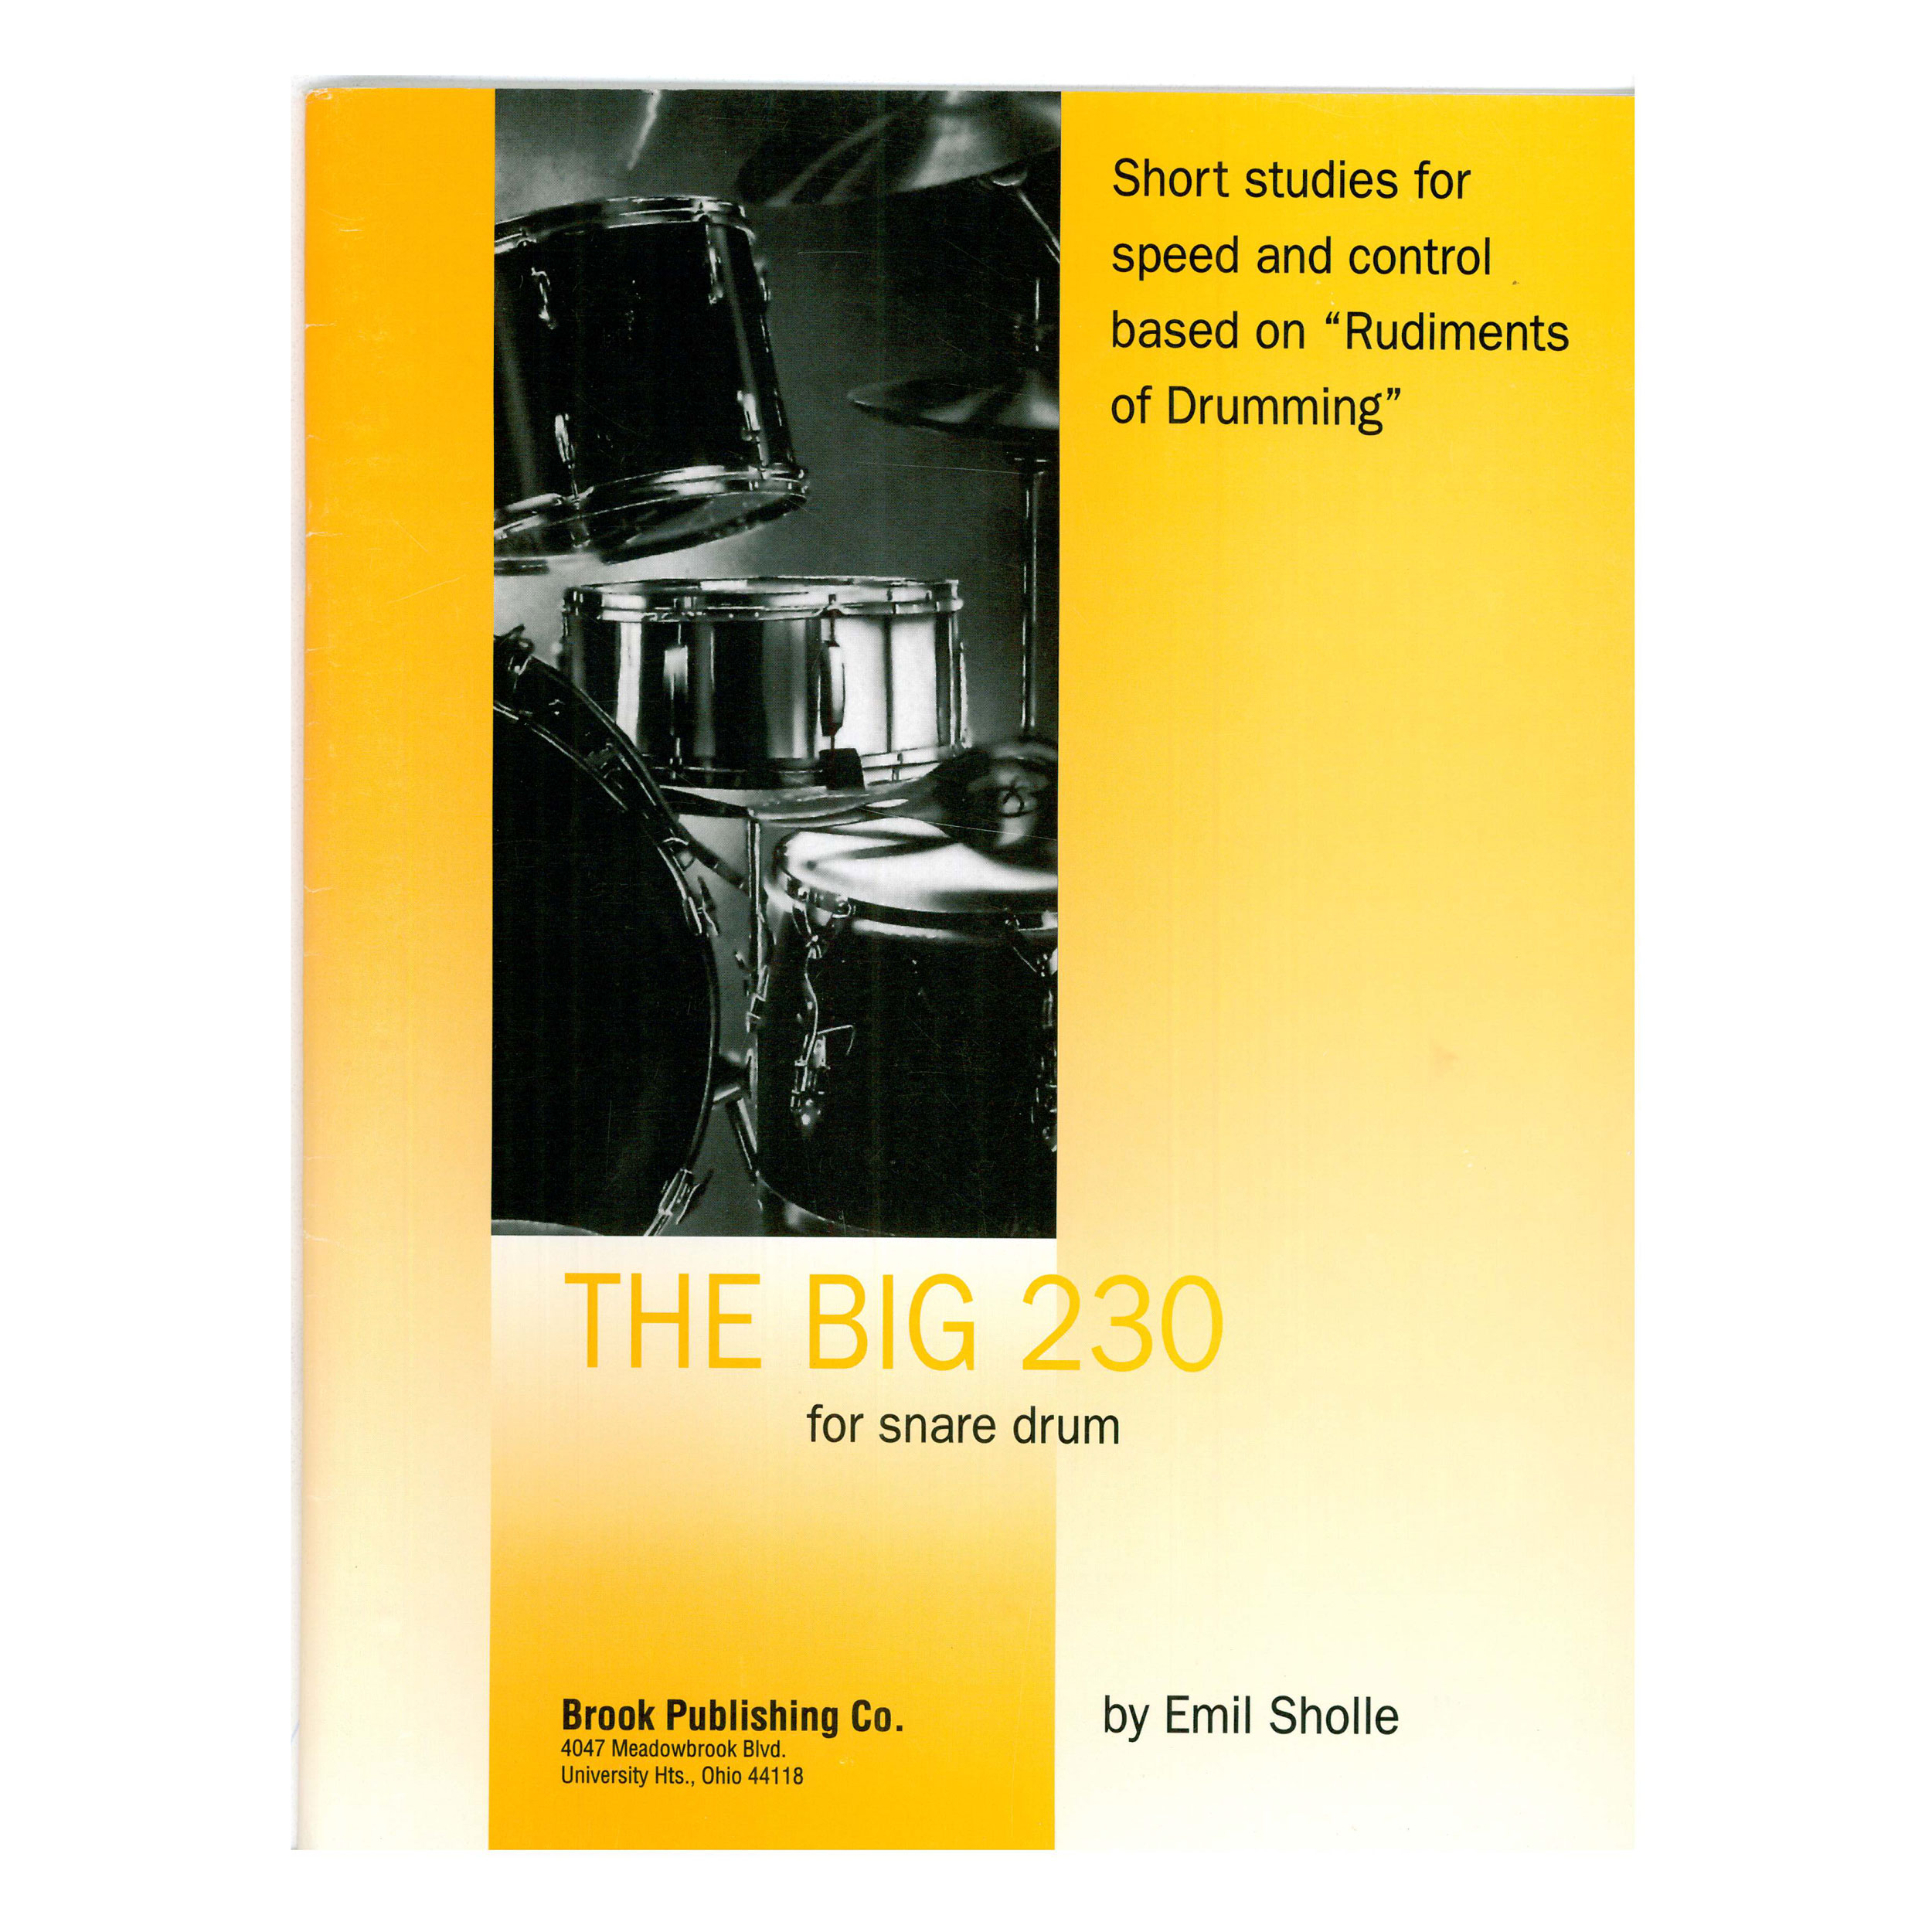 The Big 230 by Emil Sholle